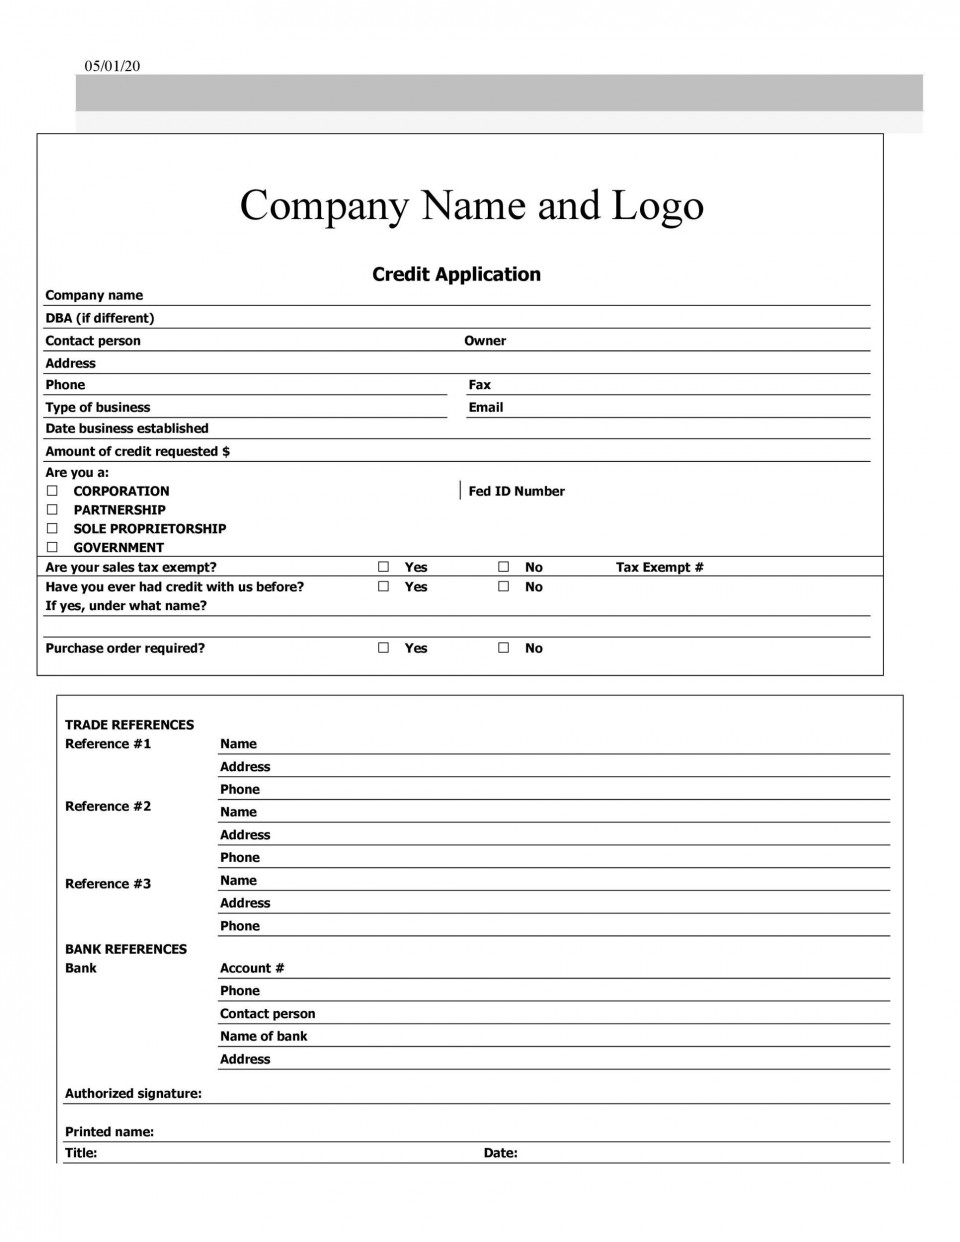 007 Excellent New Customer Account Application Form Template Image  Busines Uk Opening960